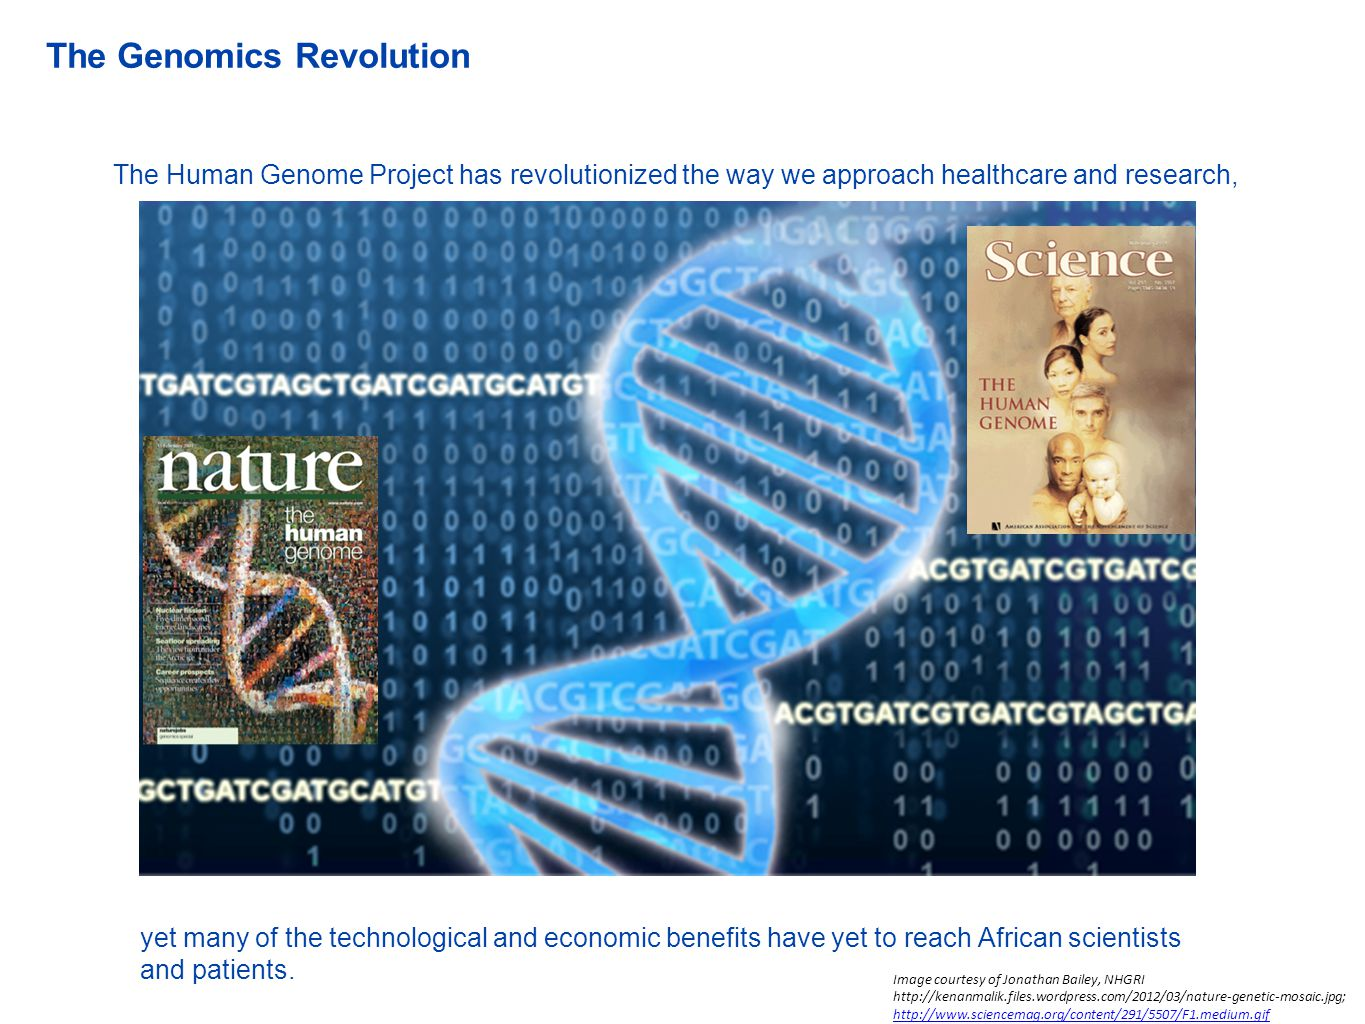 The Human Genome Project has revolutionized the way we approach healthcare and research, yet many of the technological and economic benefits have yet to reach African scientists and patients.